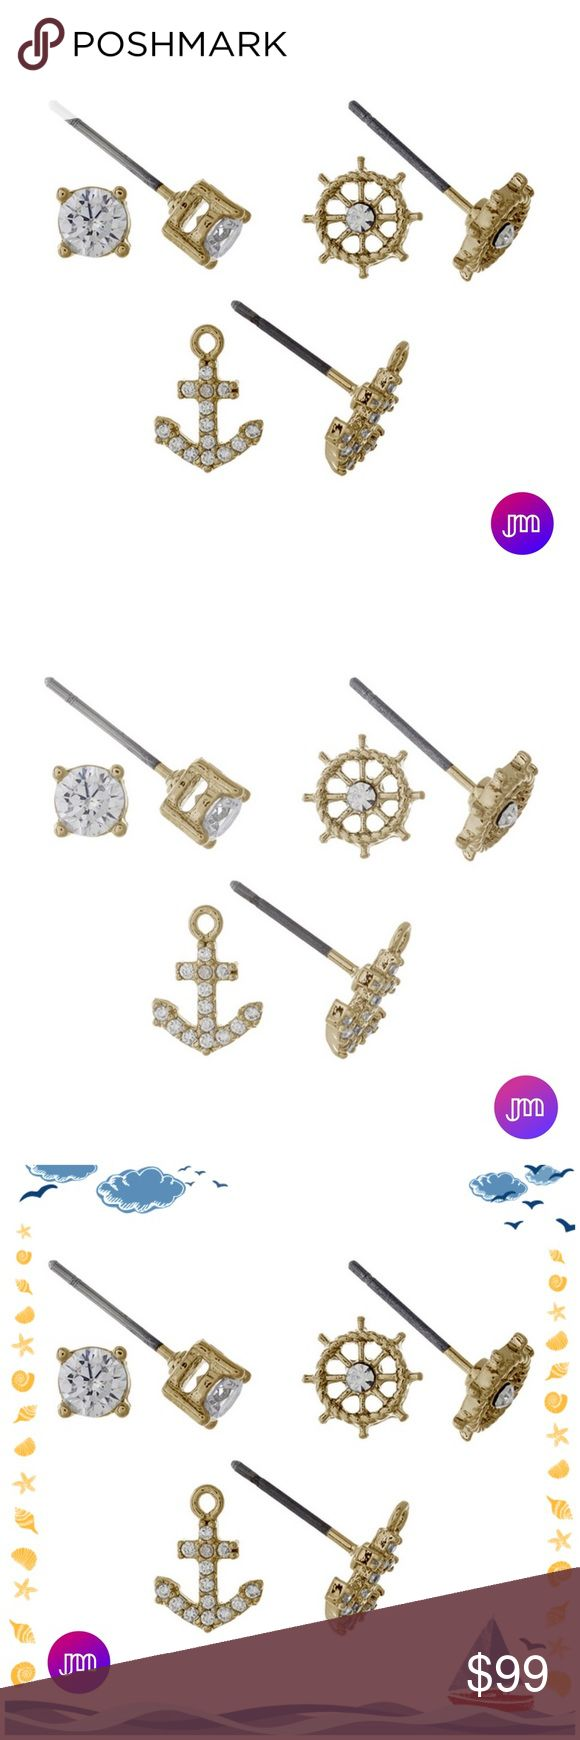 Three Pairs of Nautical Earring Studs Dainty gold tone three pair earring set with rhinestone studs, anchor studs, and captain's wheel studs. Janis Marie Jewelry Earrings